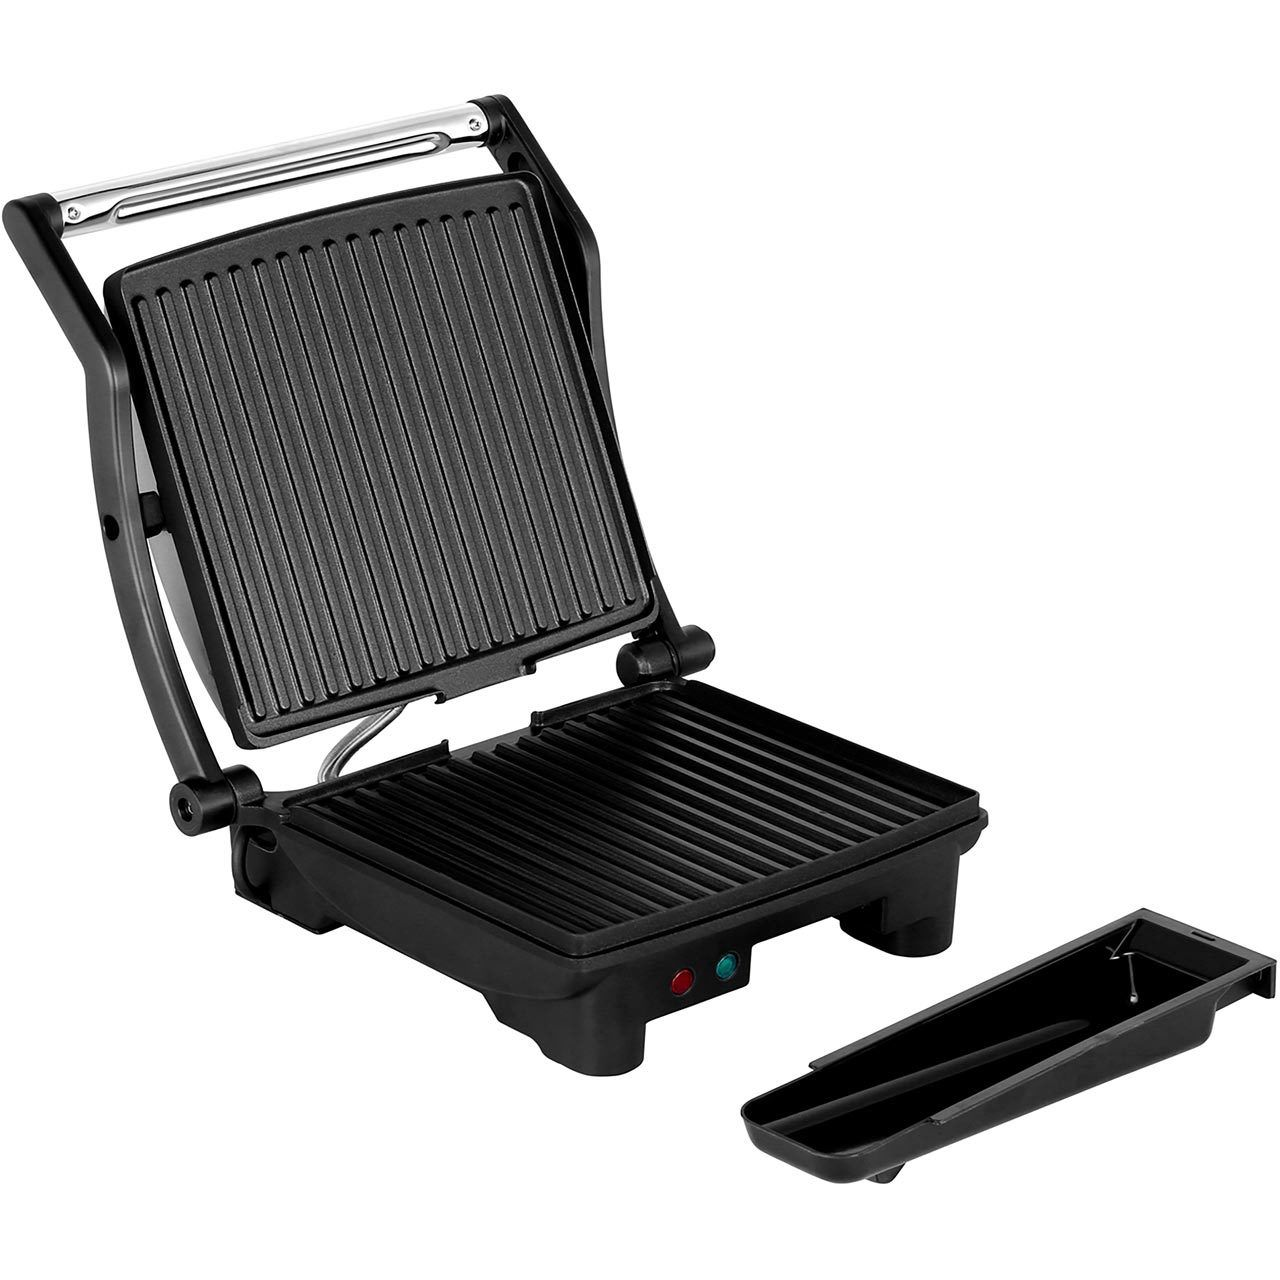 russell hobbs 17888 3 in 1 panini grill griddle sandwich. Black Bedroom Furniture Sets. Home Design Ideas